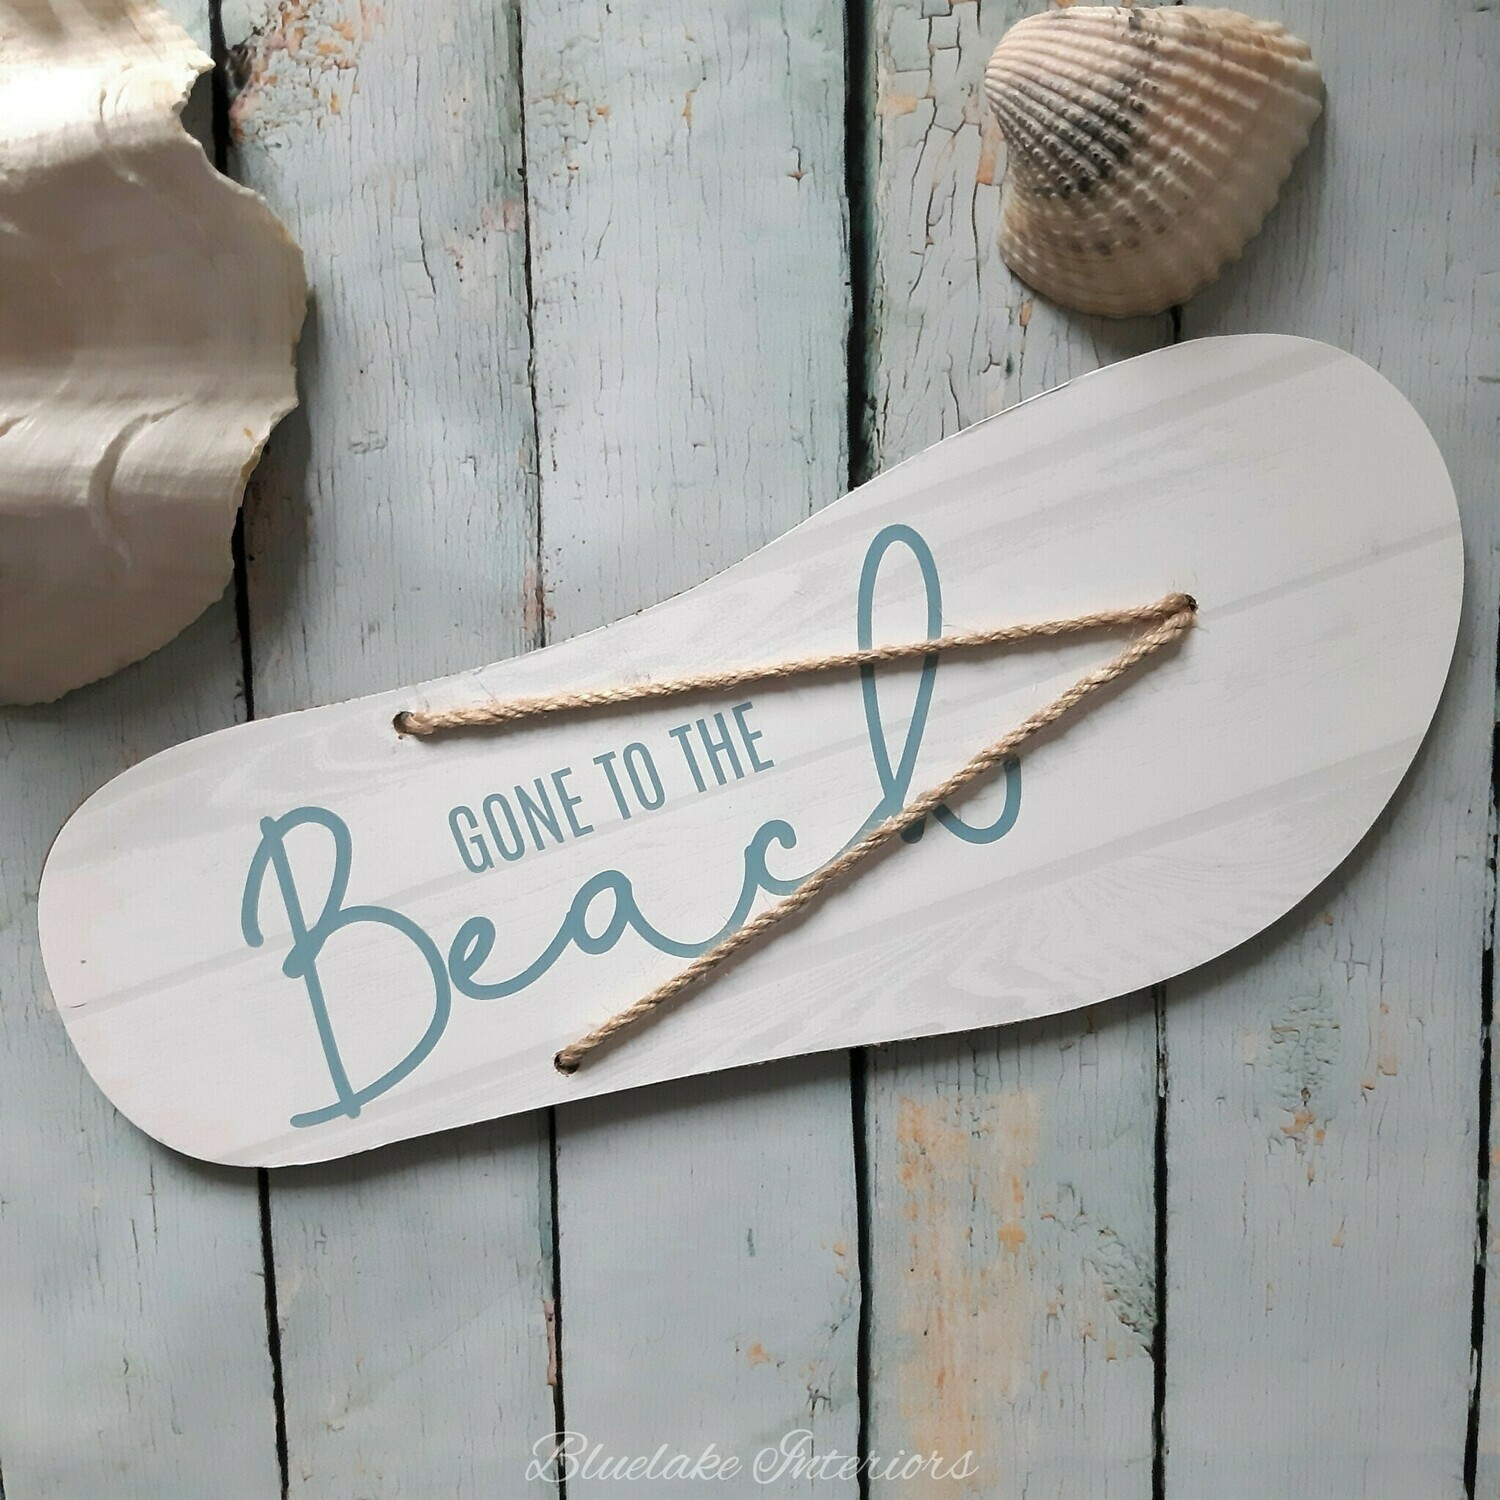 Gone To The Beach Nautical Flip Flop Wall Plaque